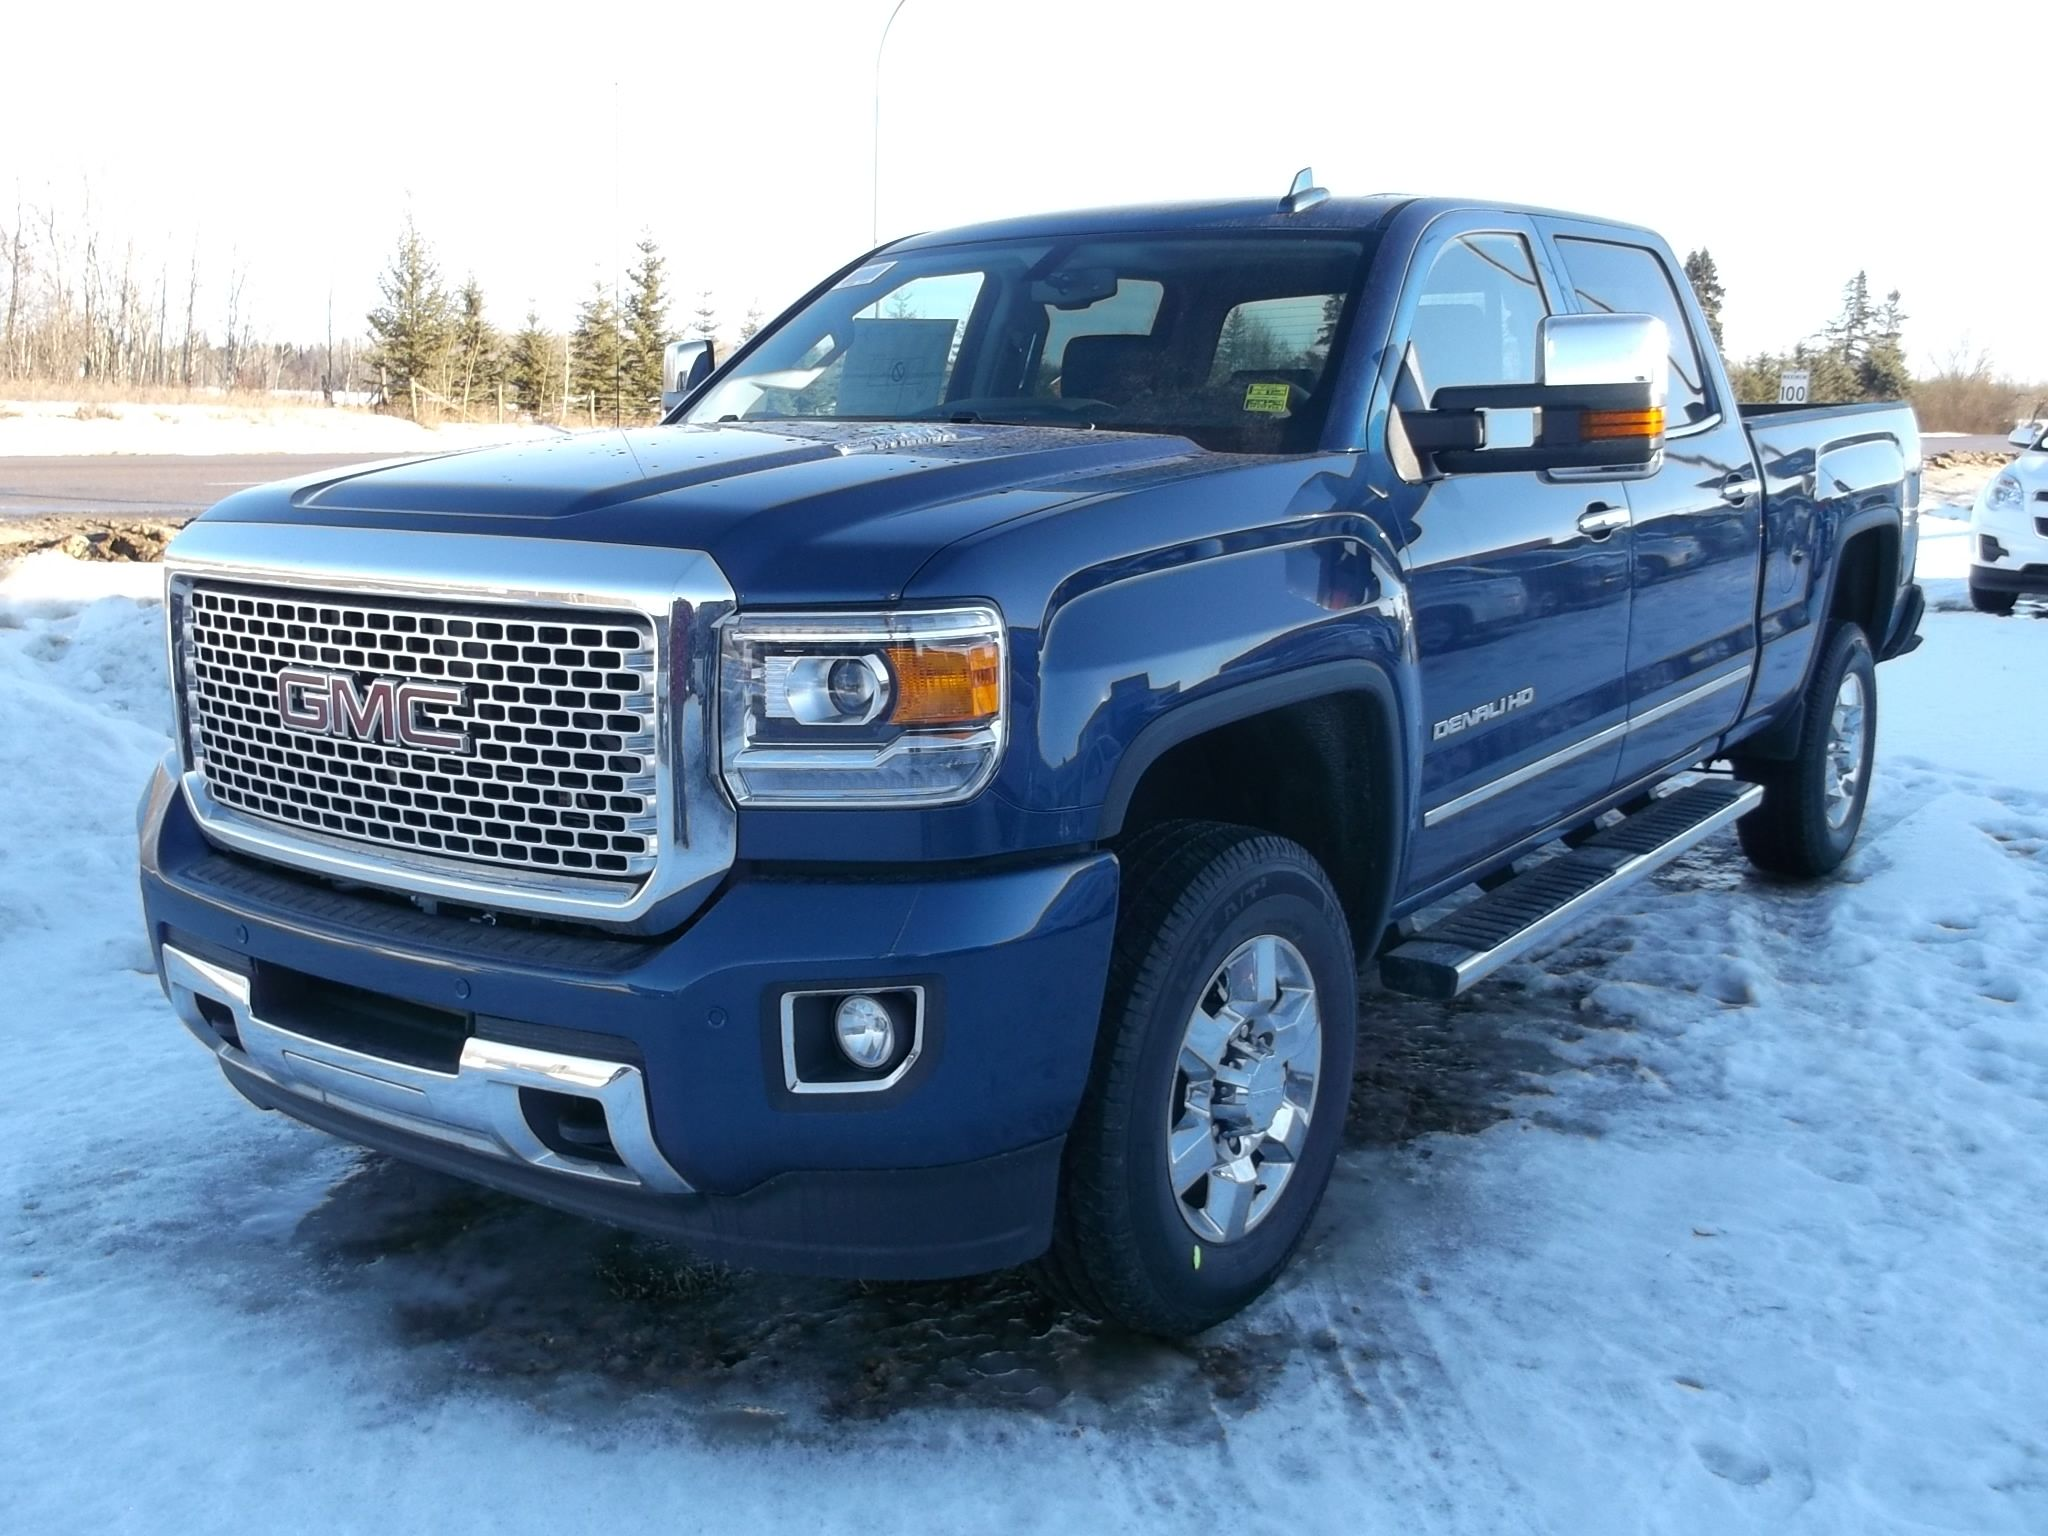 2019 chevy silverado 1500 revealed it appears the cover office attempted to pull a quick one on chevrolet pinterest chevy silverado chevy